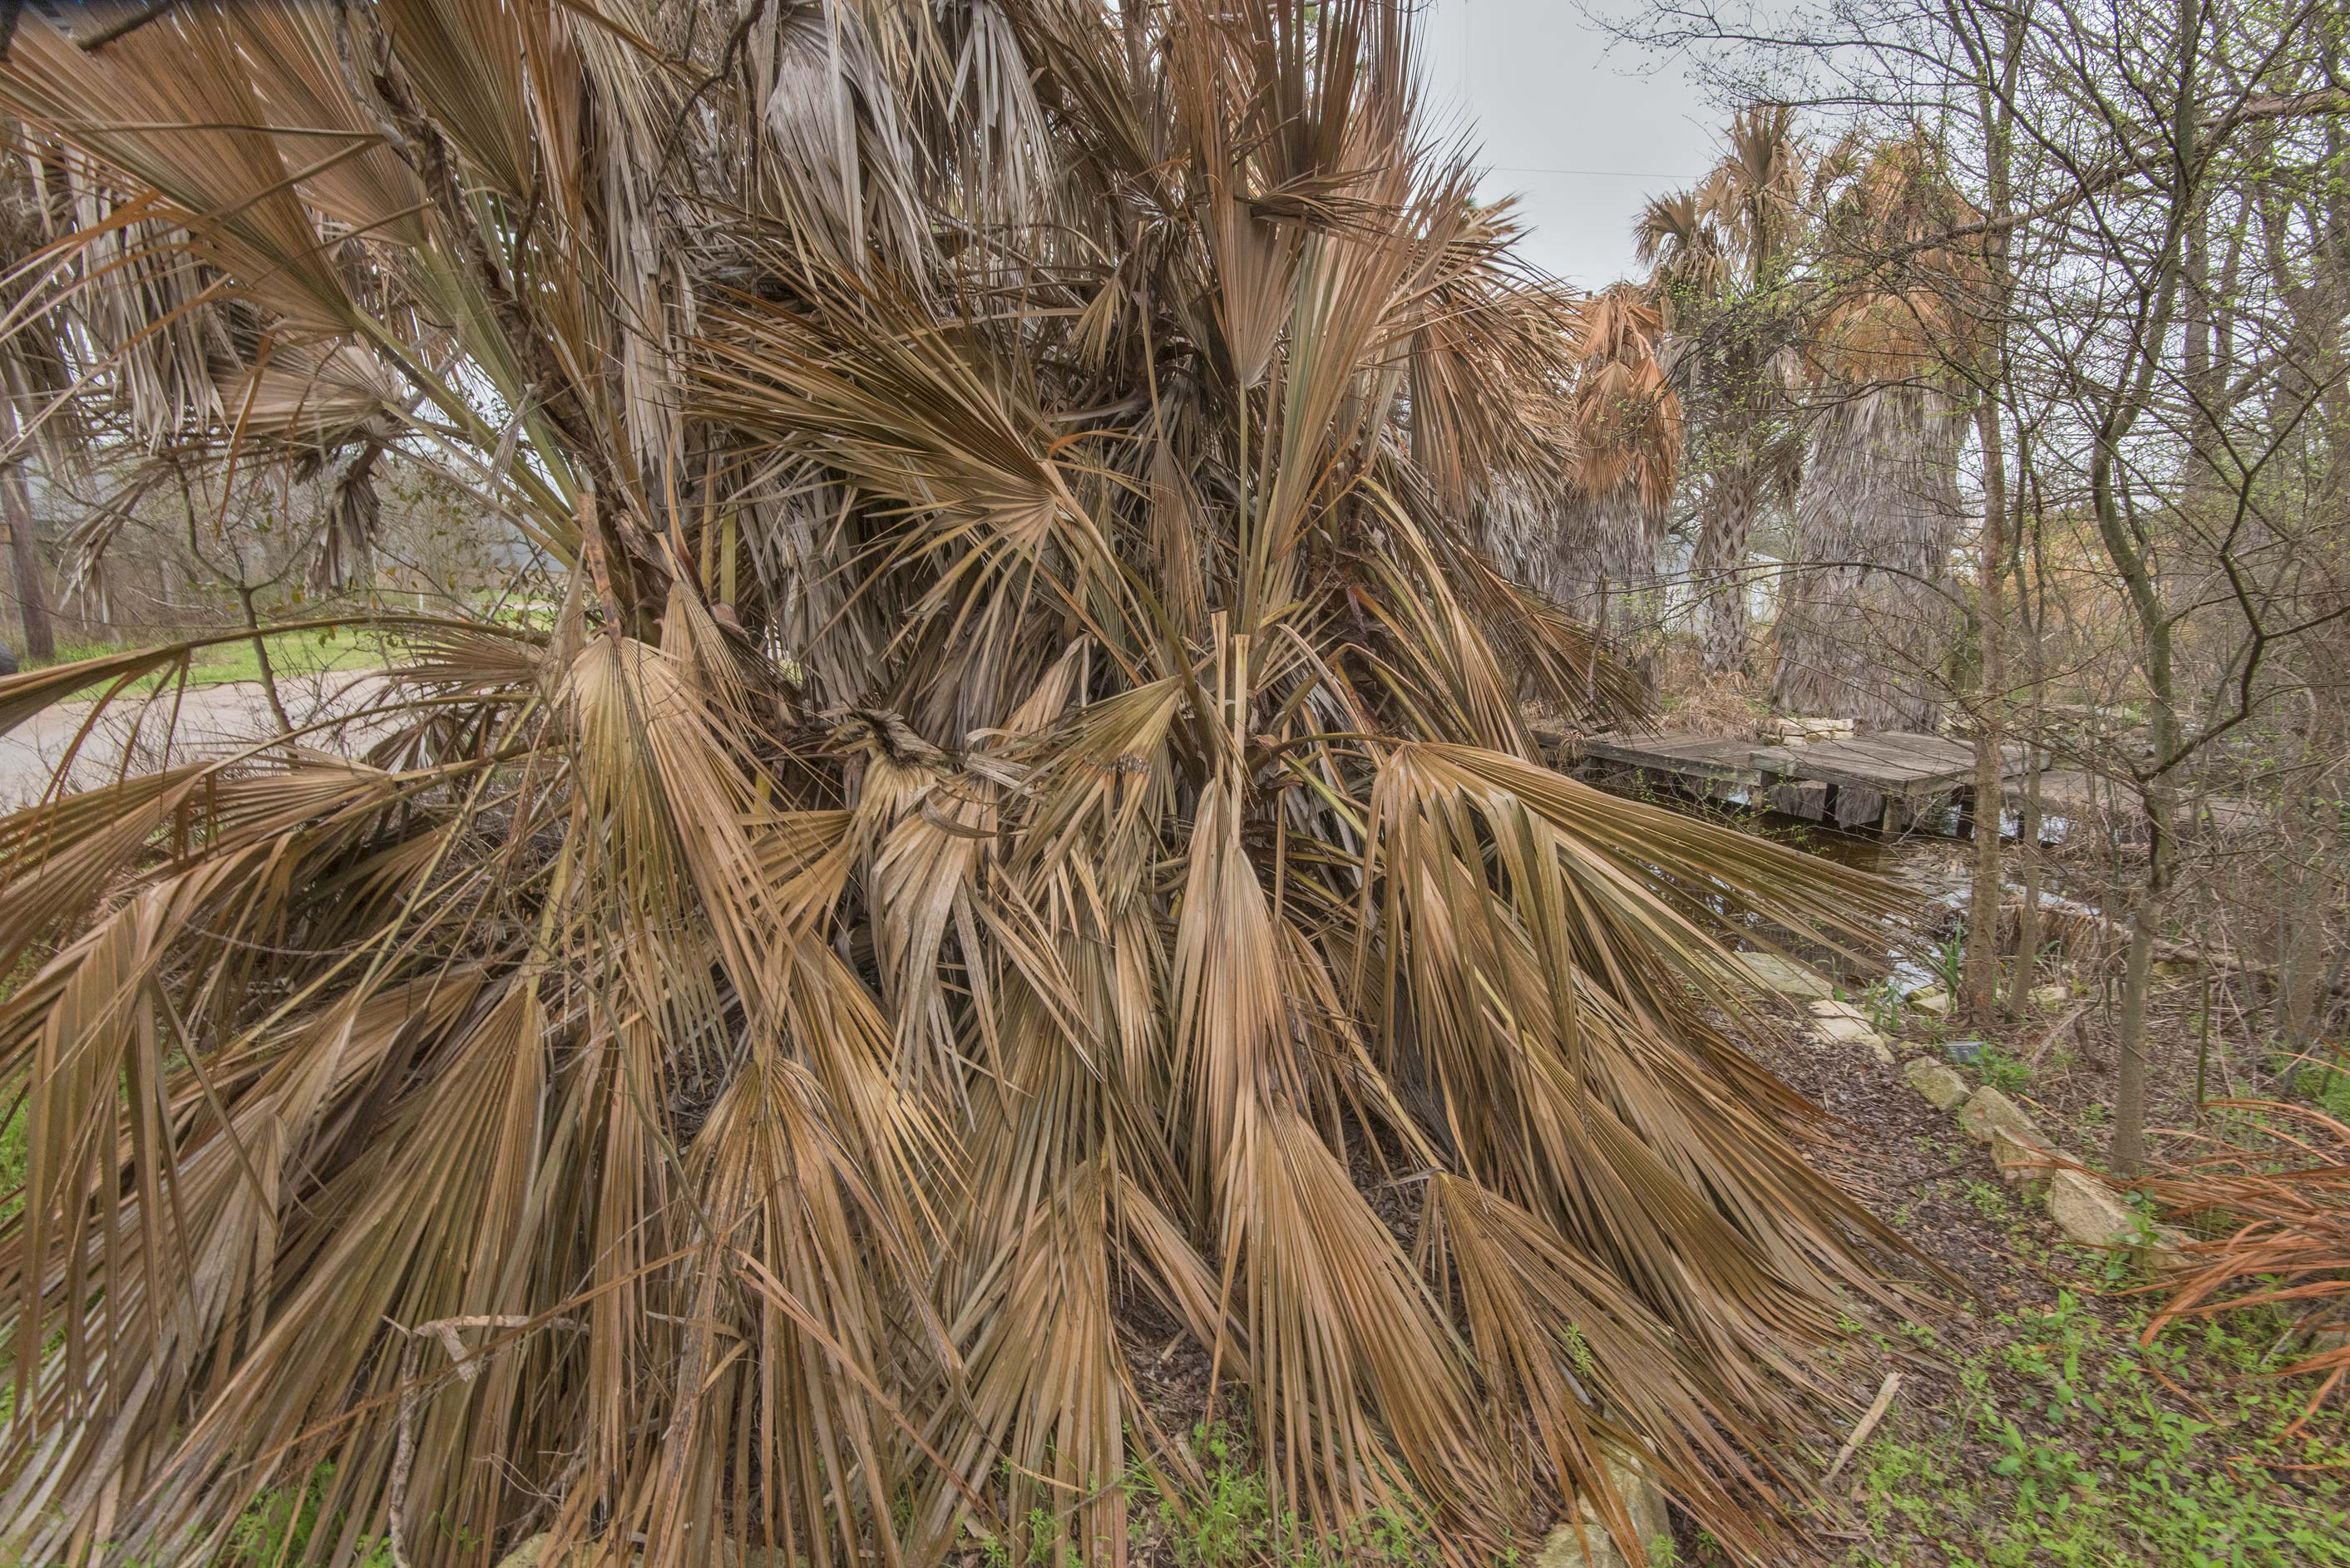 Dry palm leaves in TAMU Horticultural Gardens in...M University. College Station, Texas